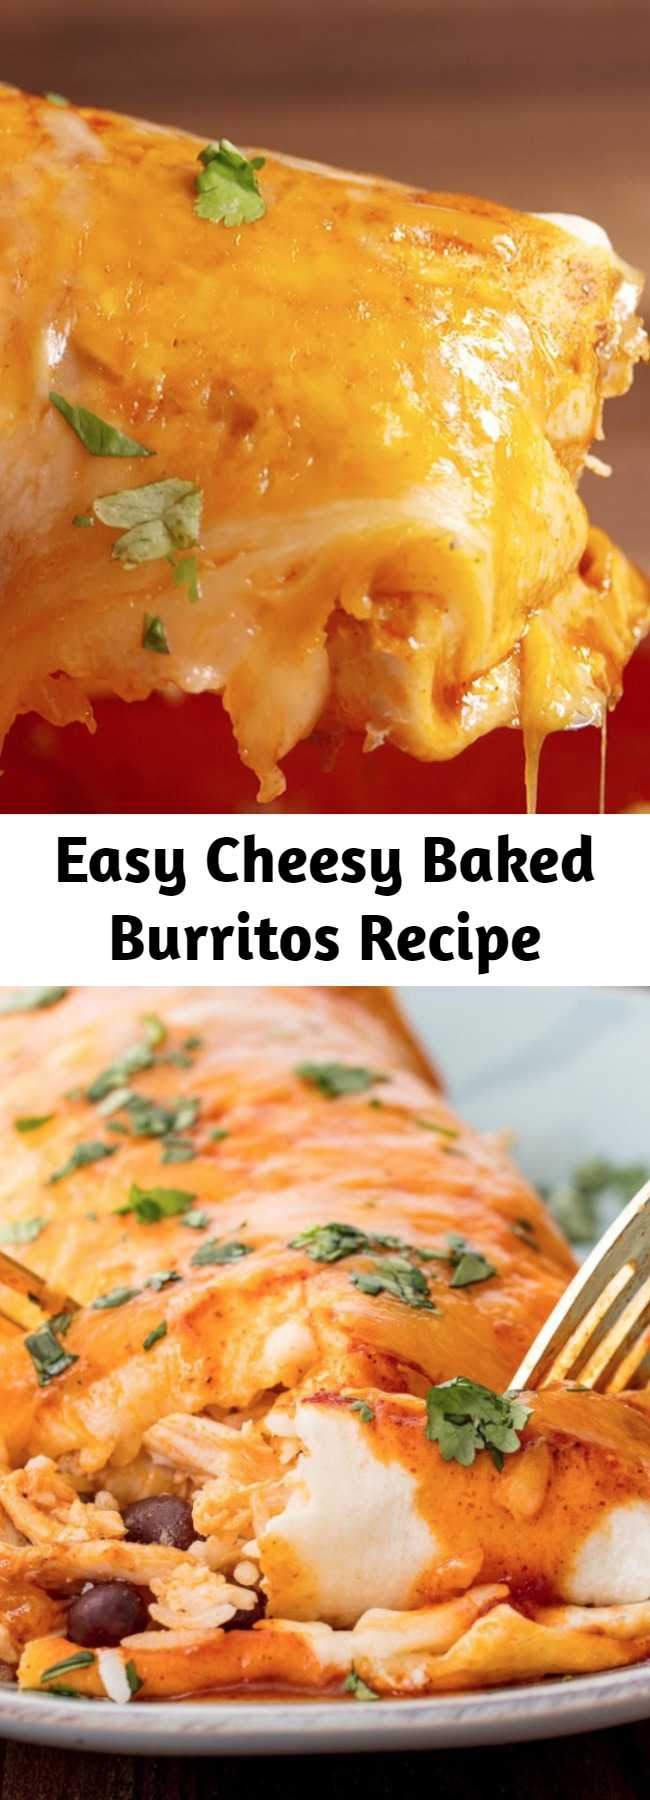 Easy Cheesy Baked Burritos Recipe - We're giving you the best possible reason to skip the line at Chipotle. Make these burritos ahead and put them in a baking dish to make for an entire group. #mexican #easy #recipe #cheesy #bakedburritos #burritos #familydinner #dinner